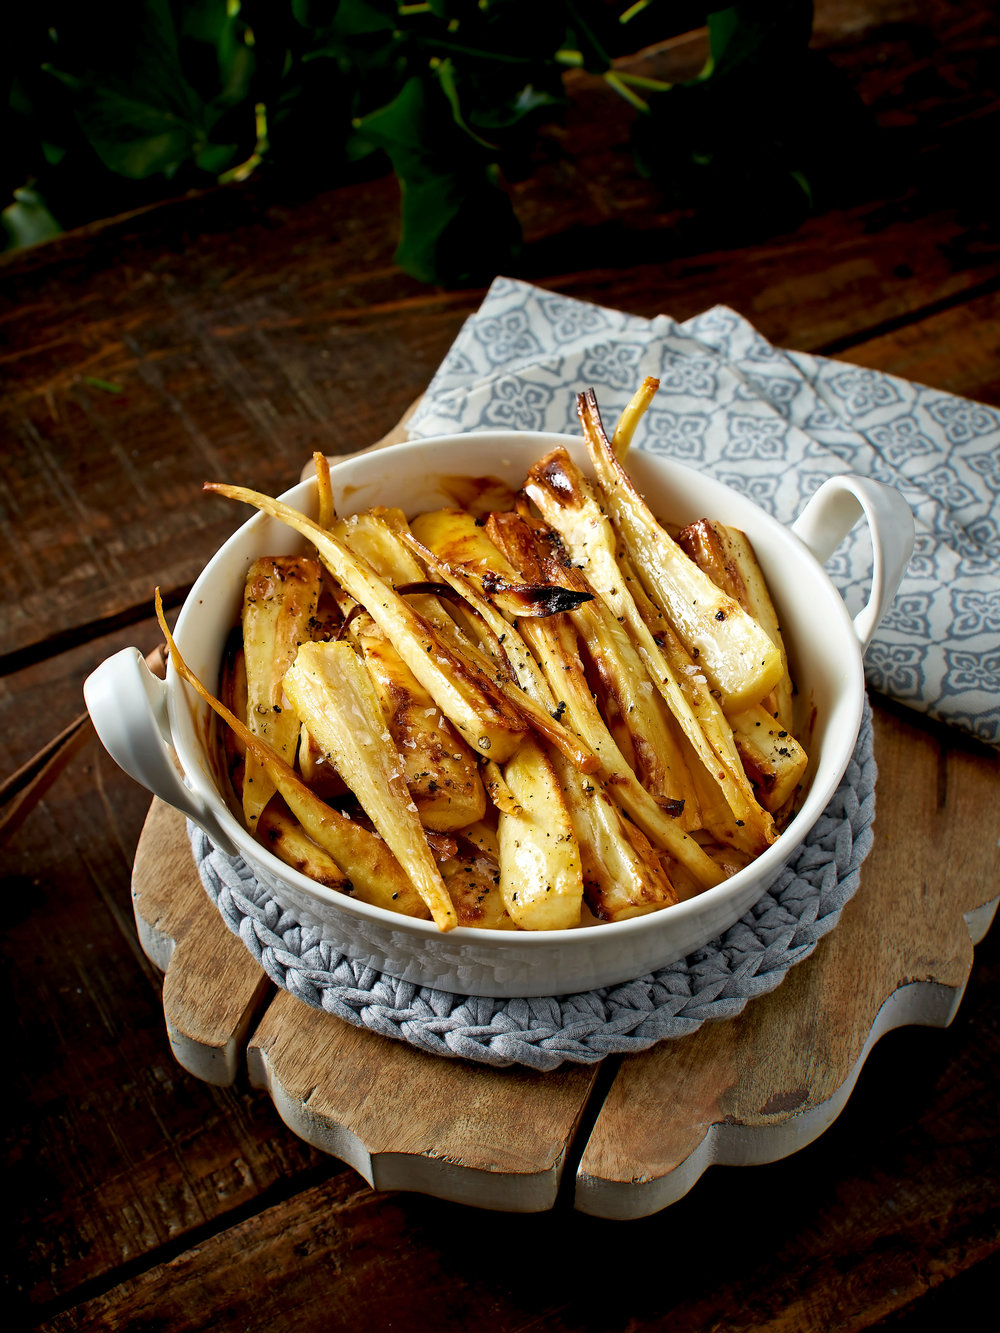 A twist on tradition: these salted caramel parsnips make a subtly sweet side.